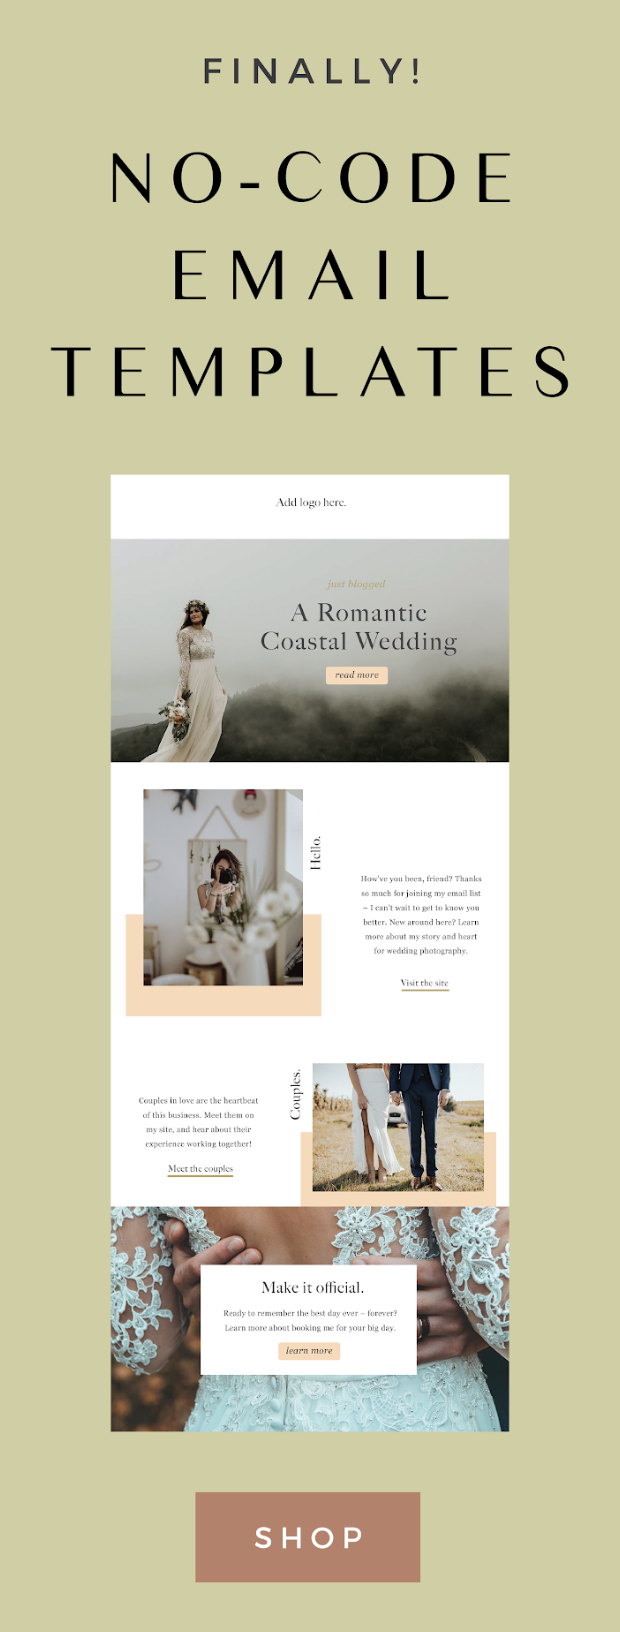 Eryn Customizable Email Template Lindsay Scholz Studio Creative Studio For Woman Owned Businesses In 2020 Email Newsletter Design Email Design Newsletter Design Templates